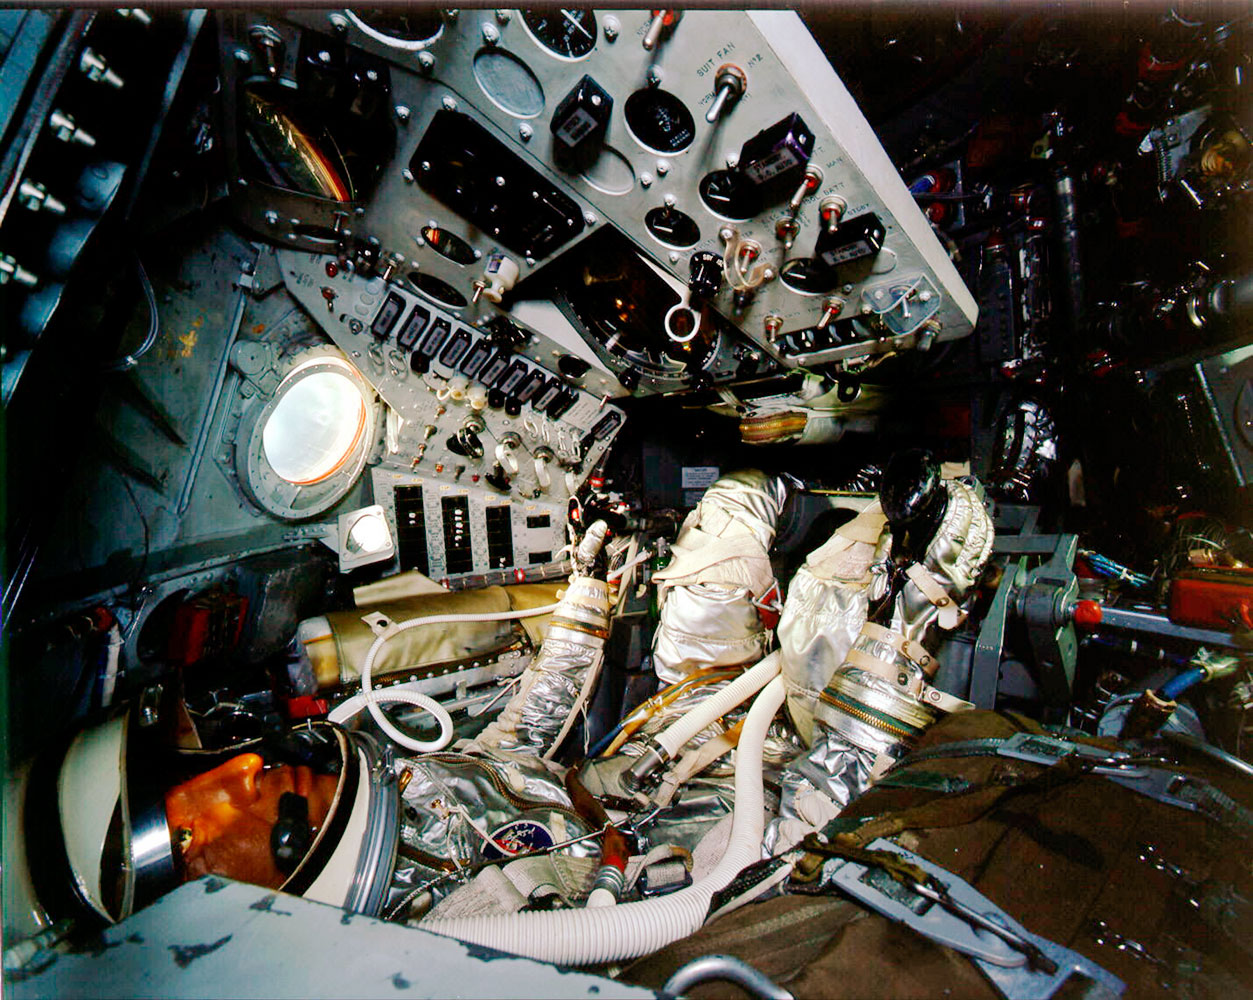 The interior of Shepard's Freedom 7 capsule.